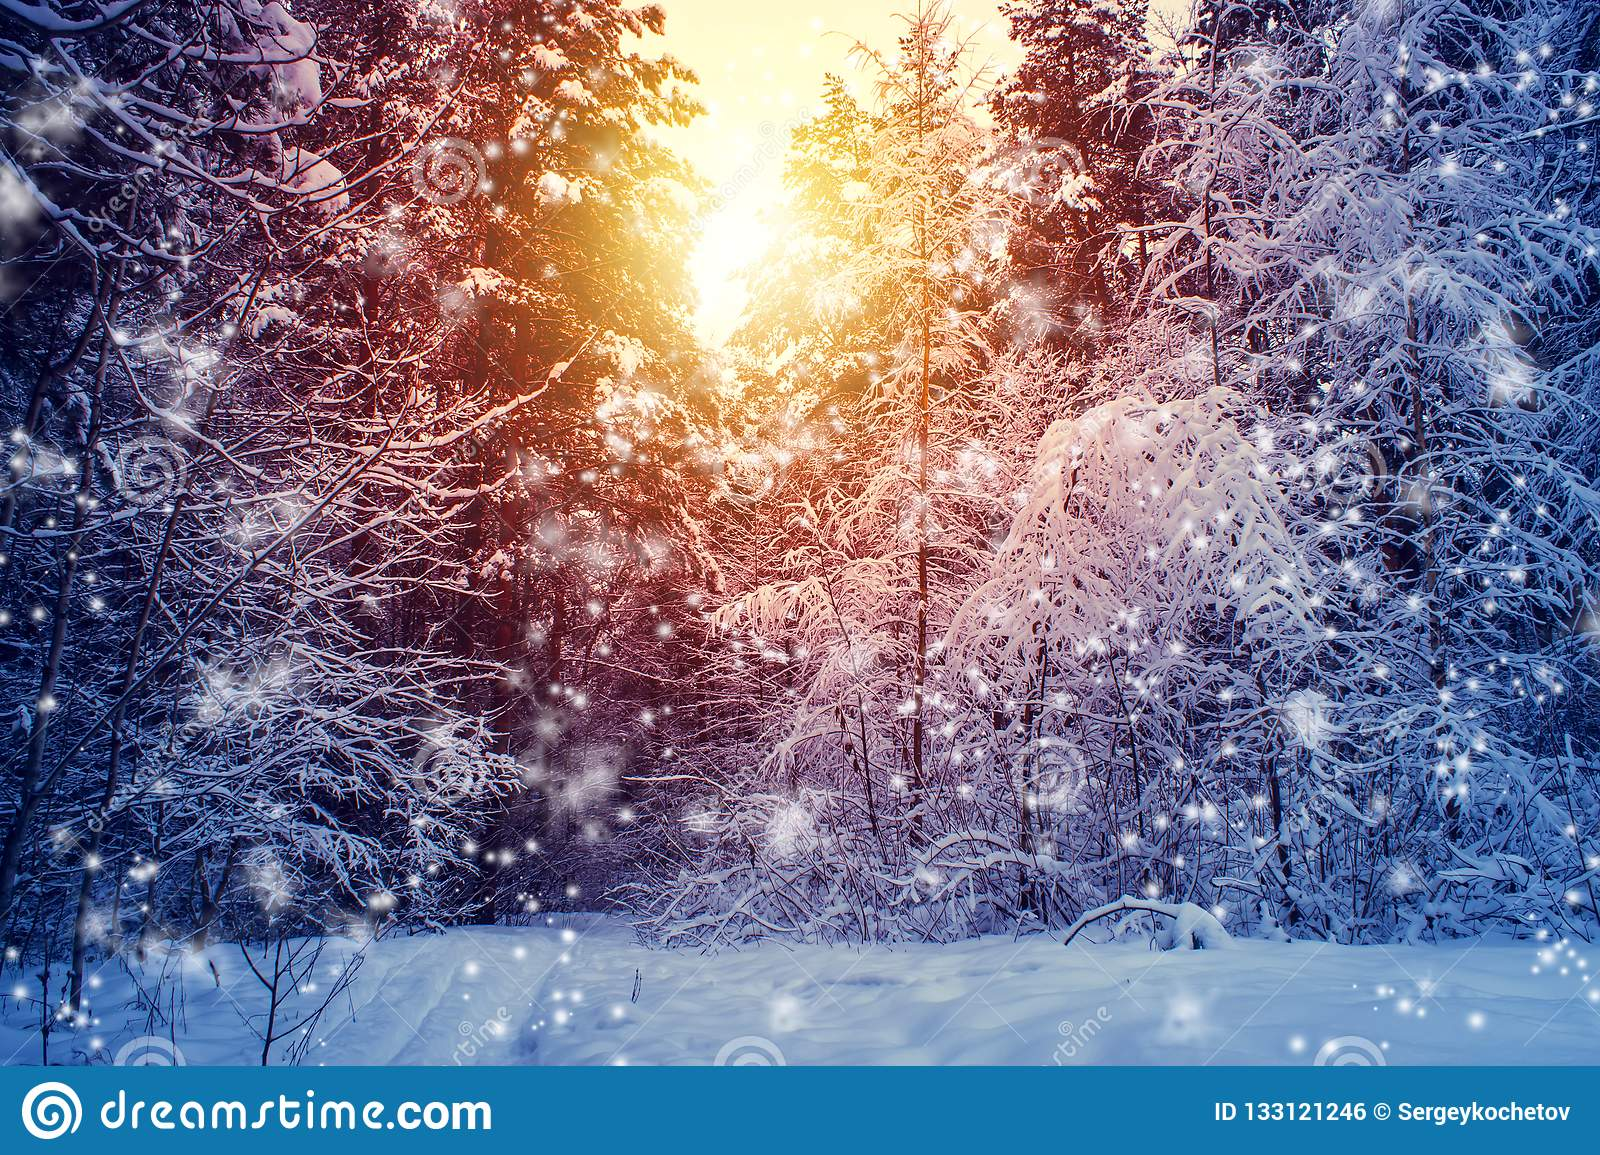 Beautiful winter landscape with forest, trees and sunrise. winterly morning of a new day. Christmas landscape with snow.